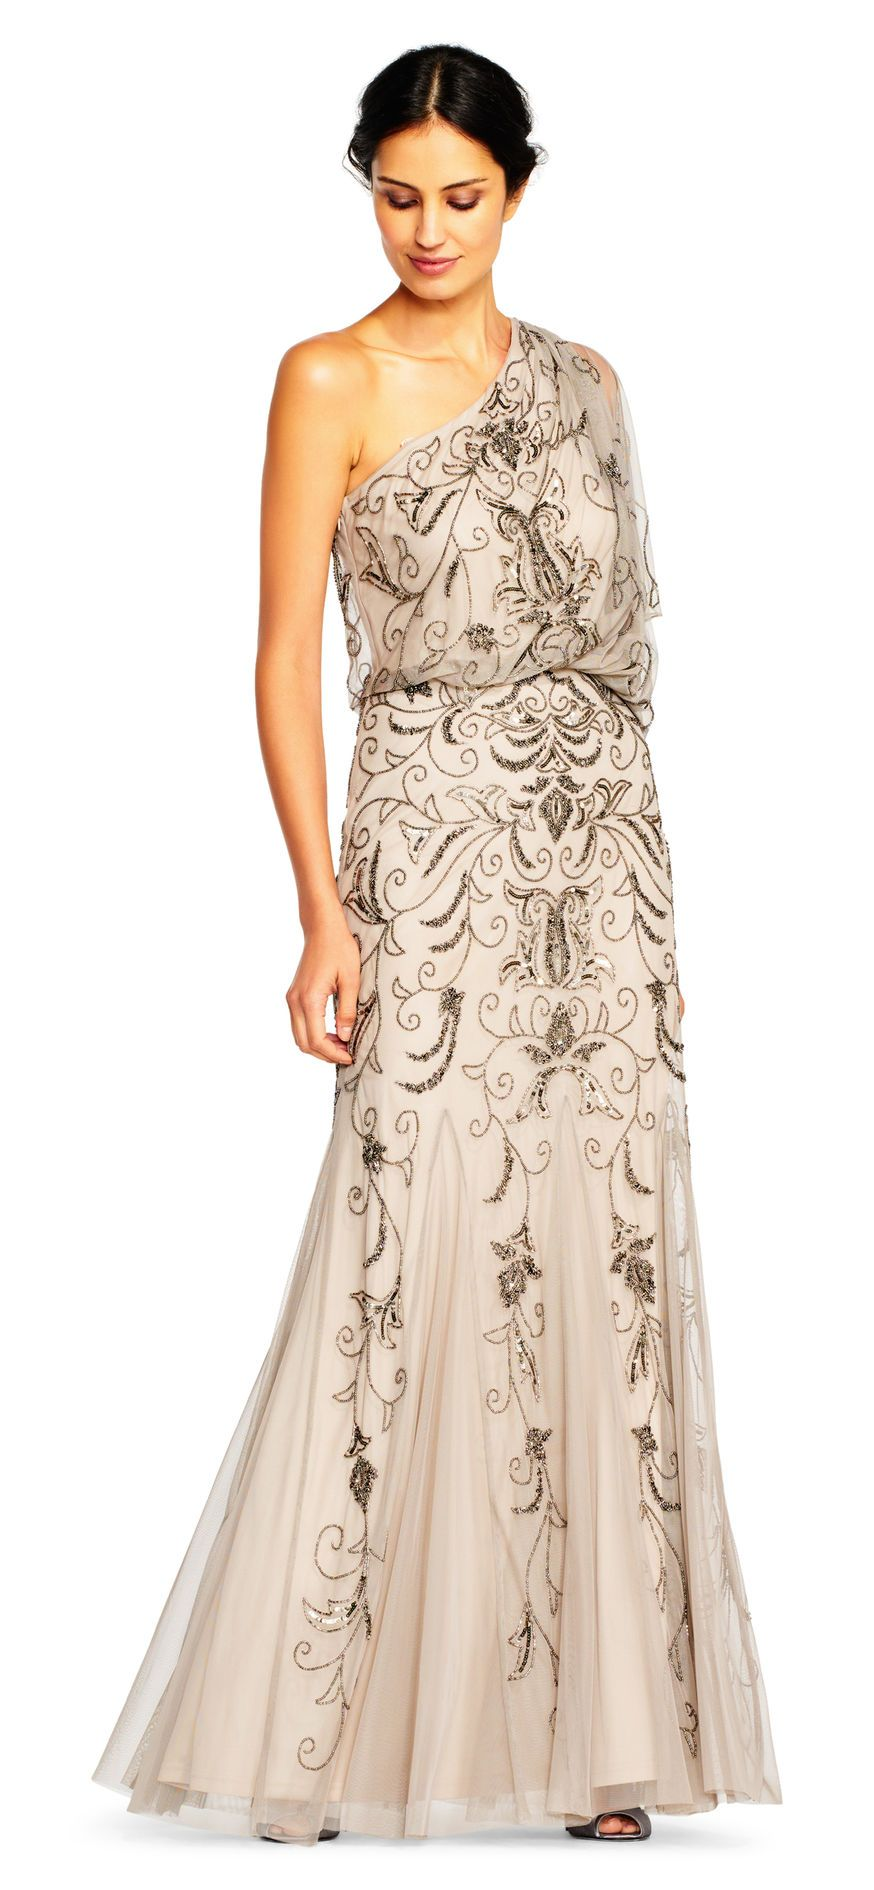 Adrianna Papell One Shoulder Dresses